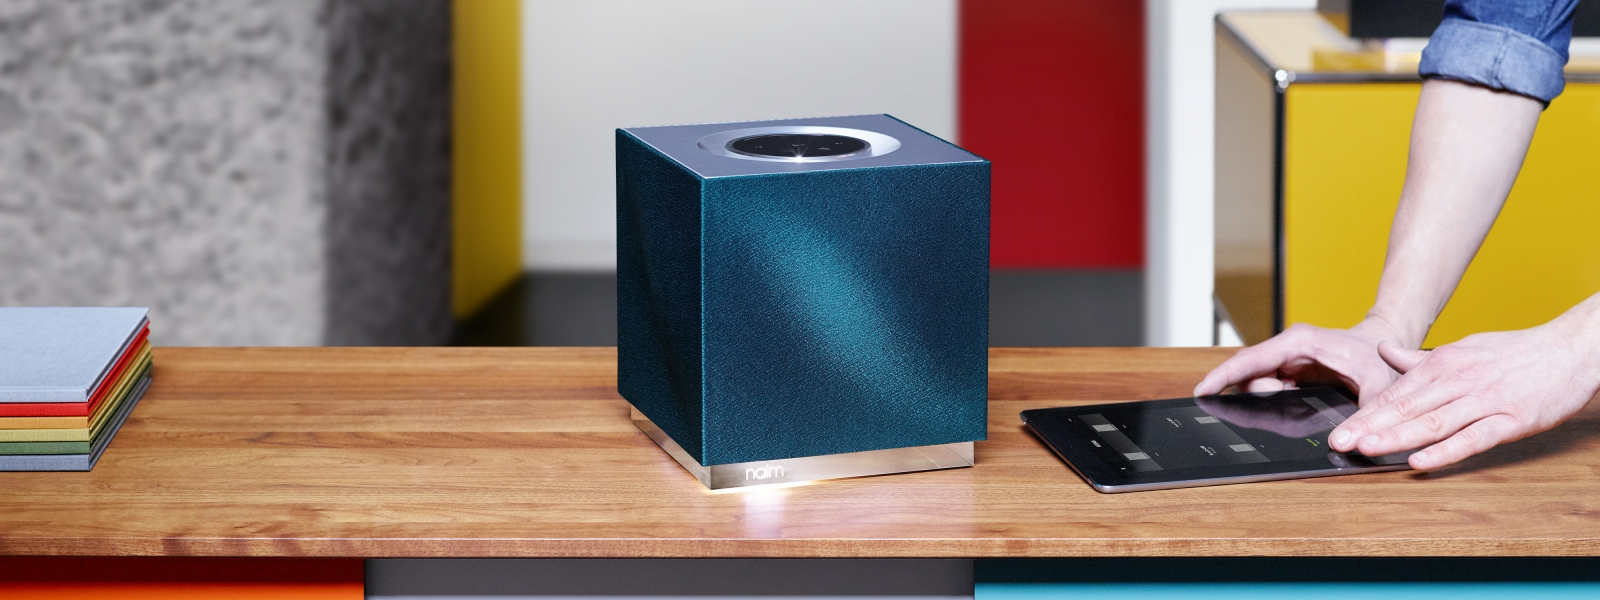 Naim Qb wireless speaker